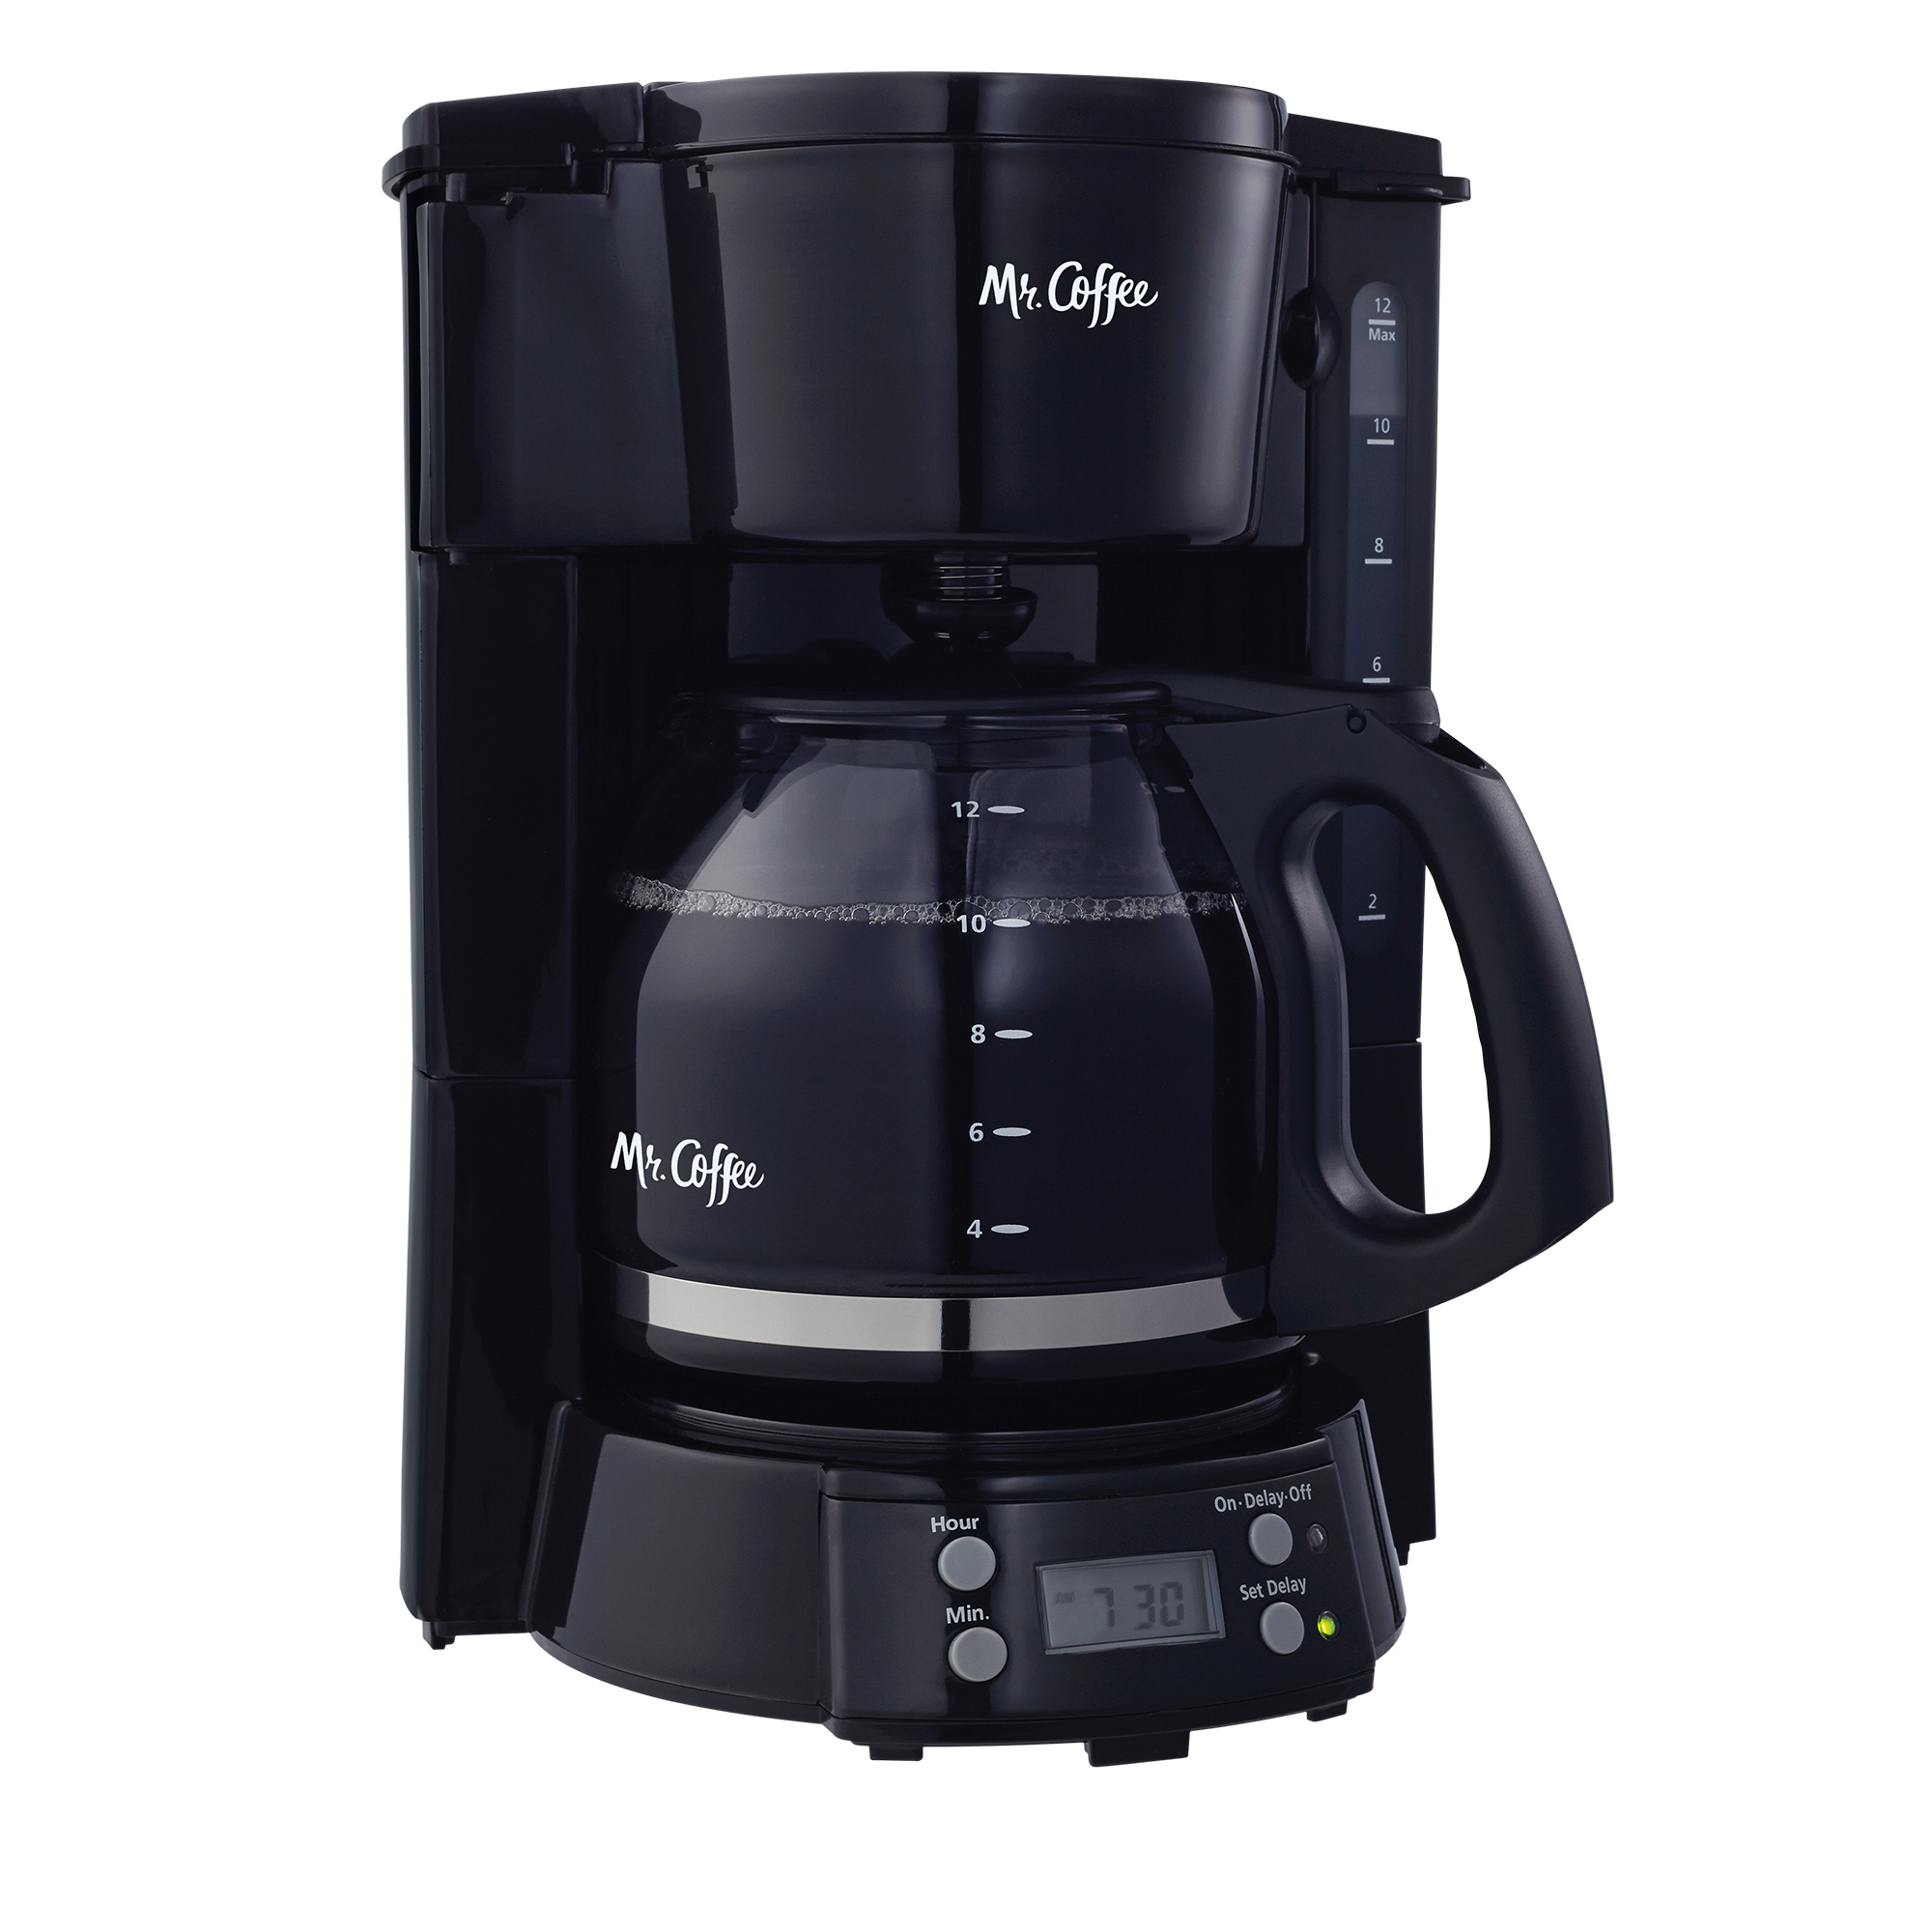 Mr. Coffee 12-Cup Programmable Coffee Maker, Black (BVMC-EVX23)